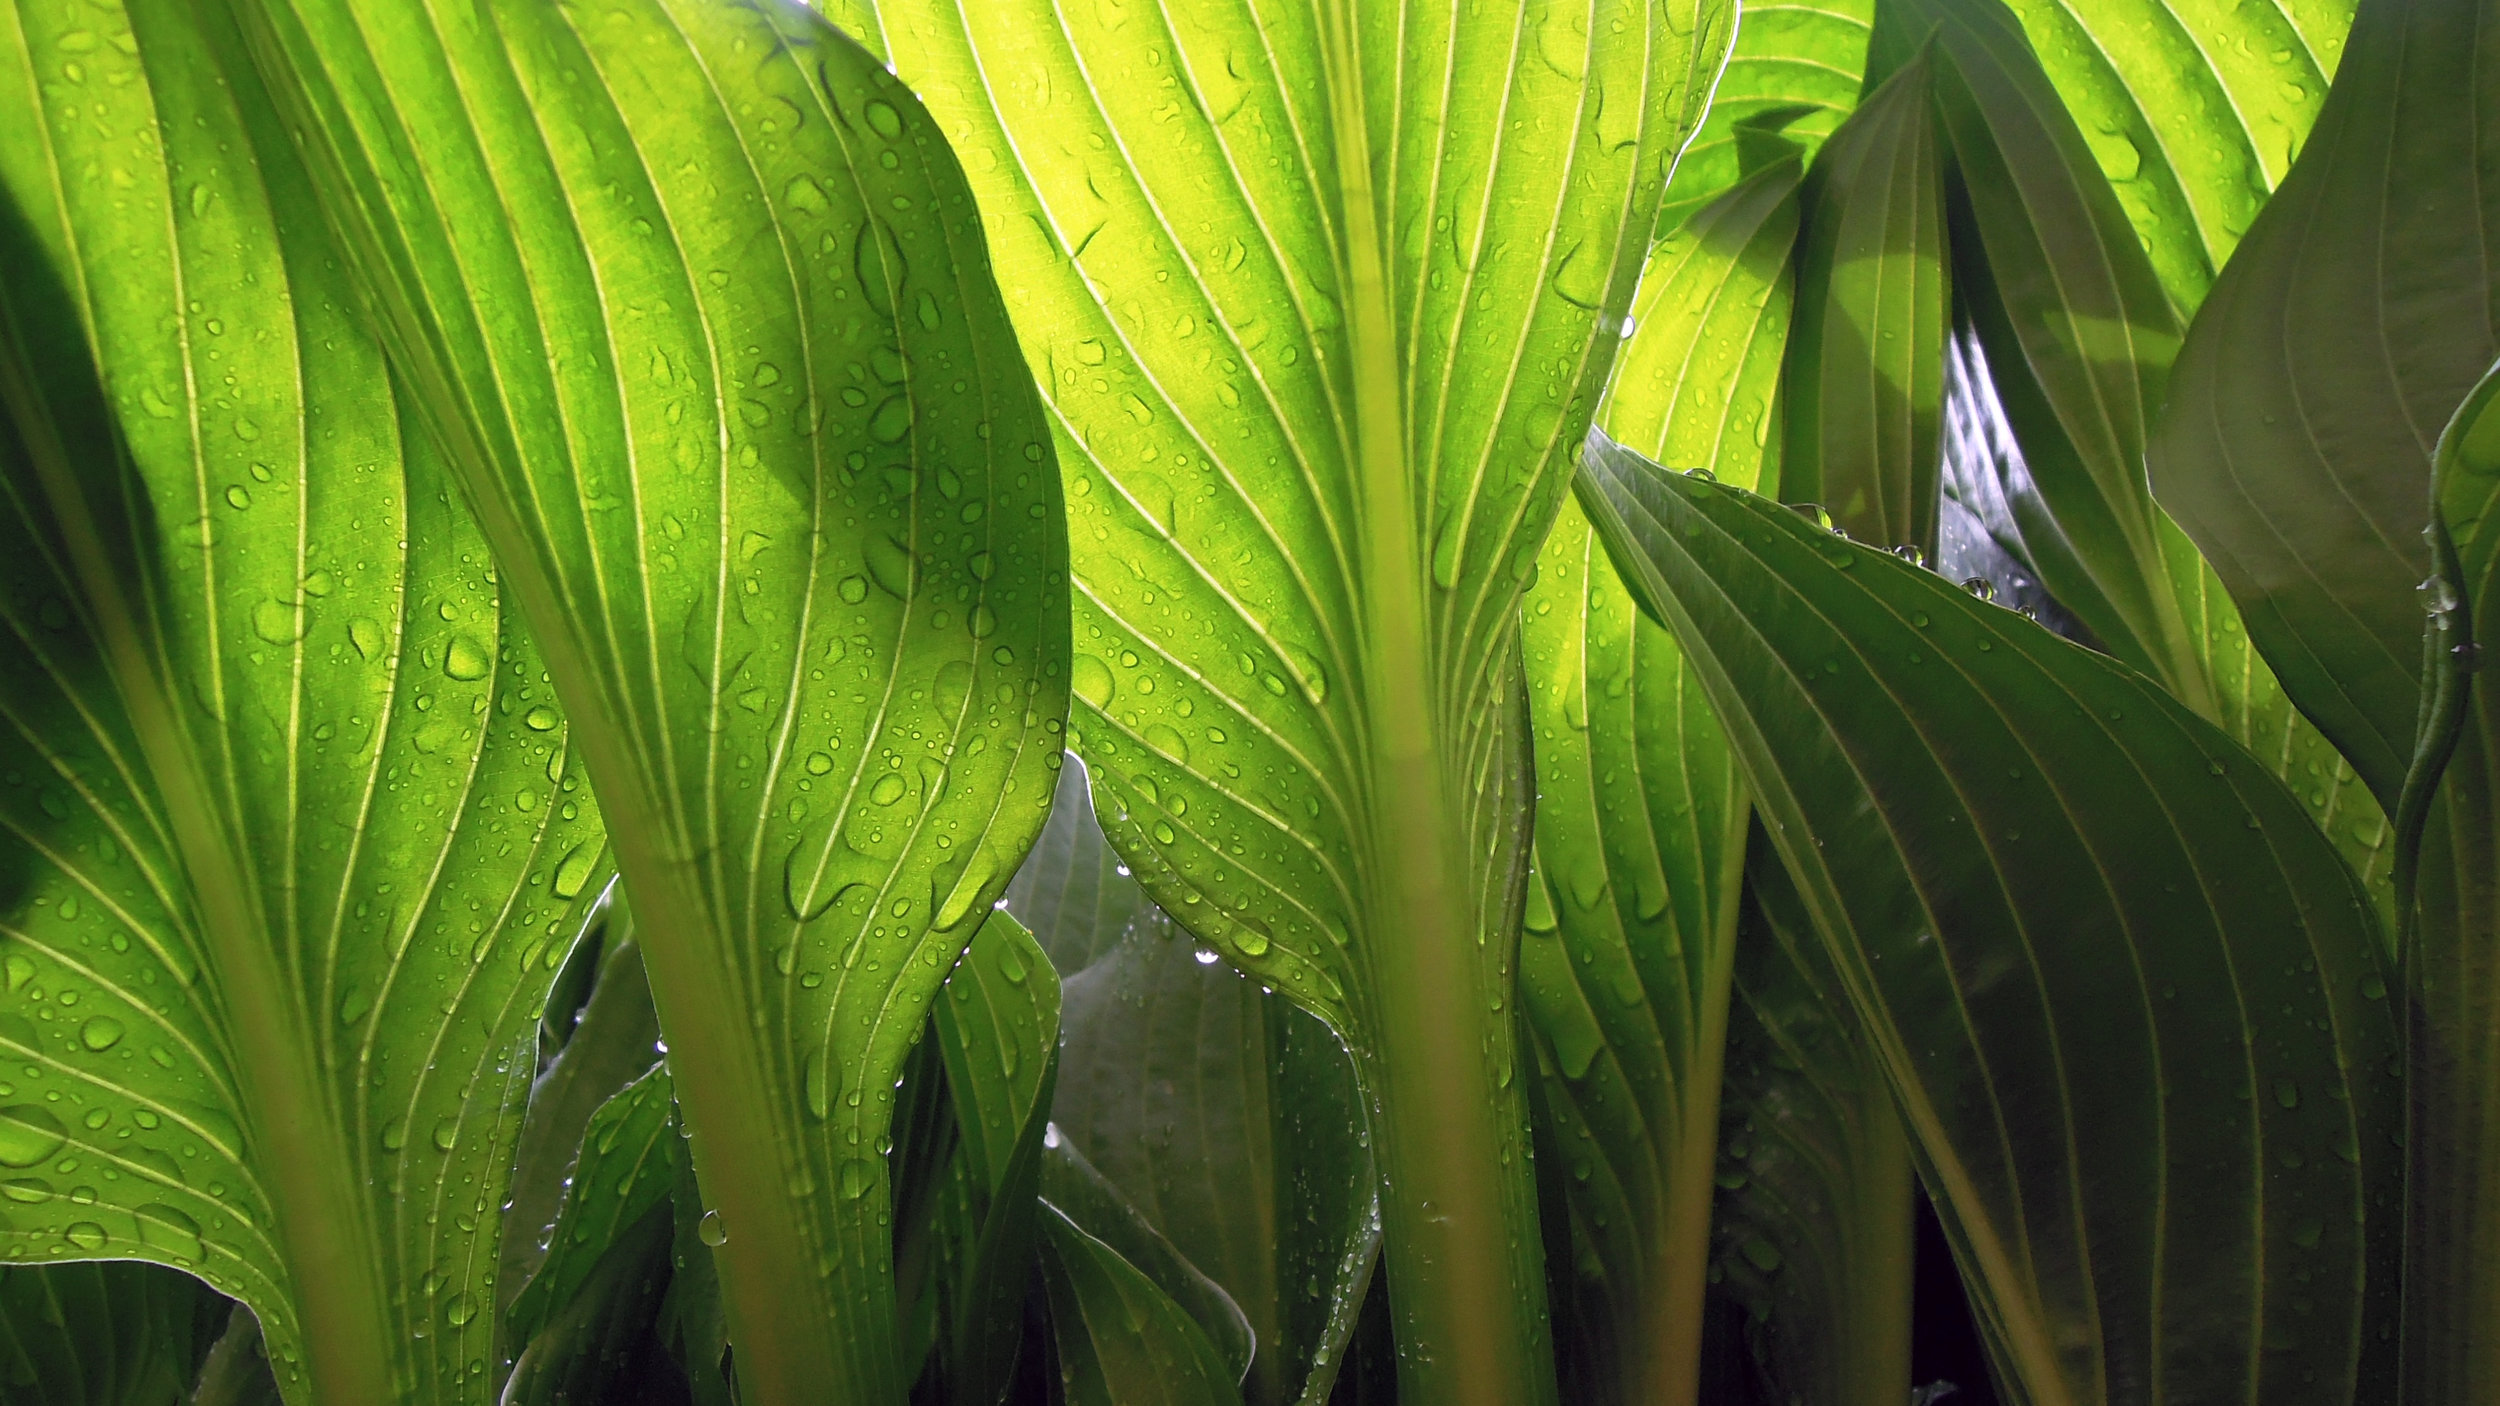 Canva - Close up of green leaves with water droplets.jpg